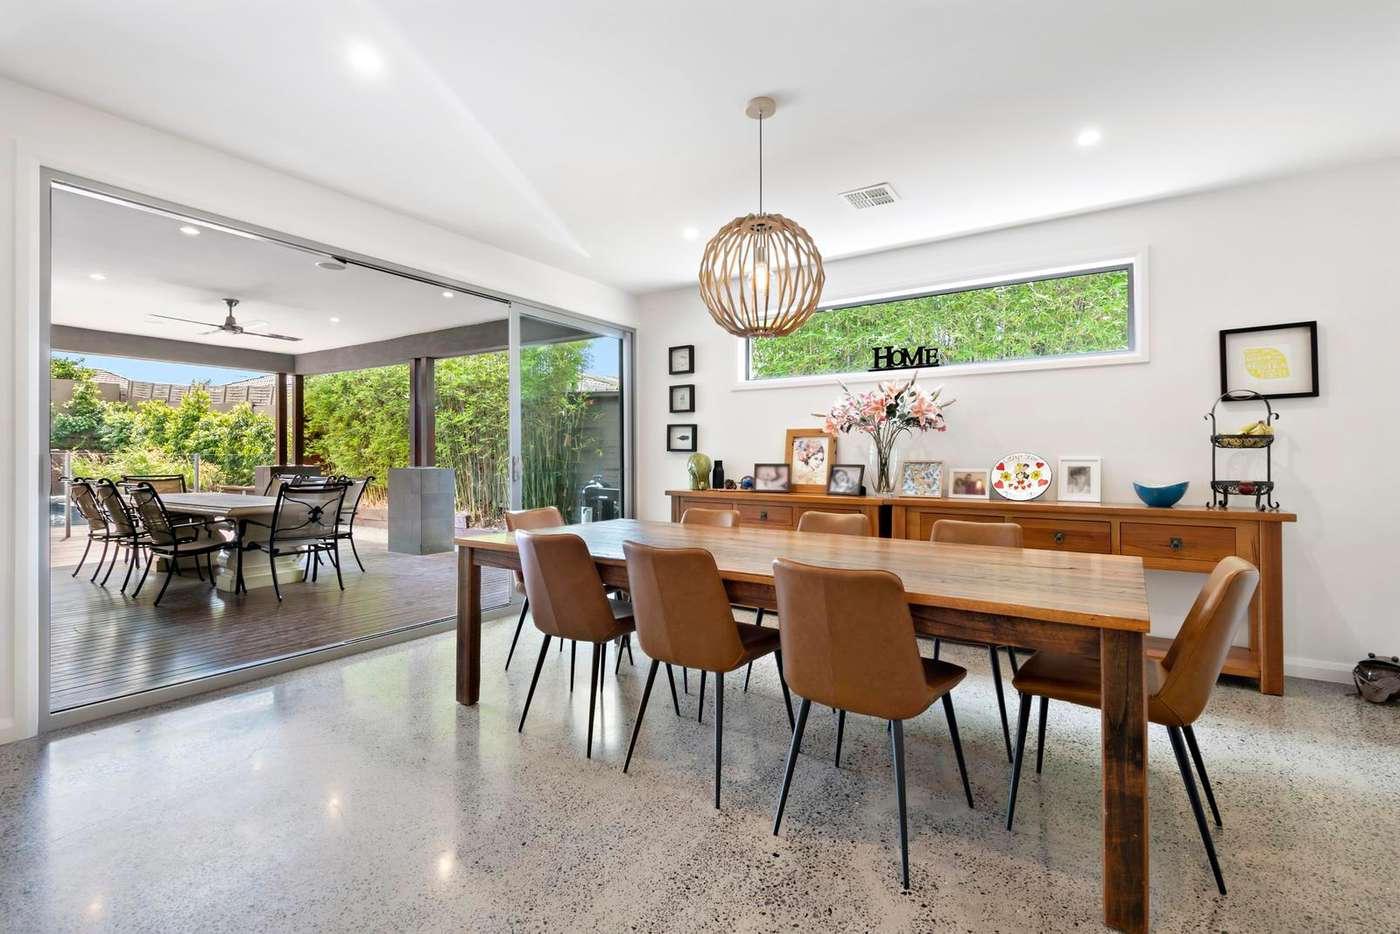 Fifth view of Homely house listing, 5 Connell Street, Mordialloc VIC 3195